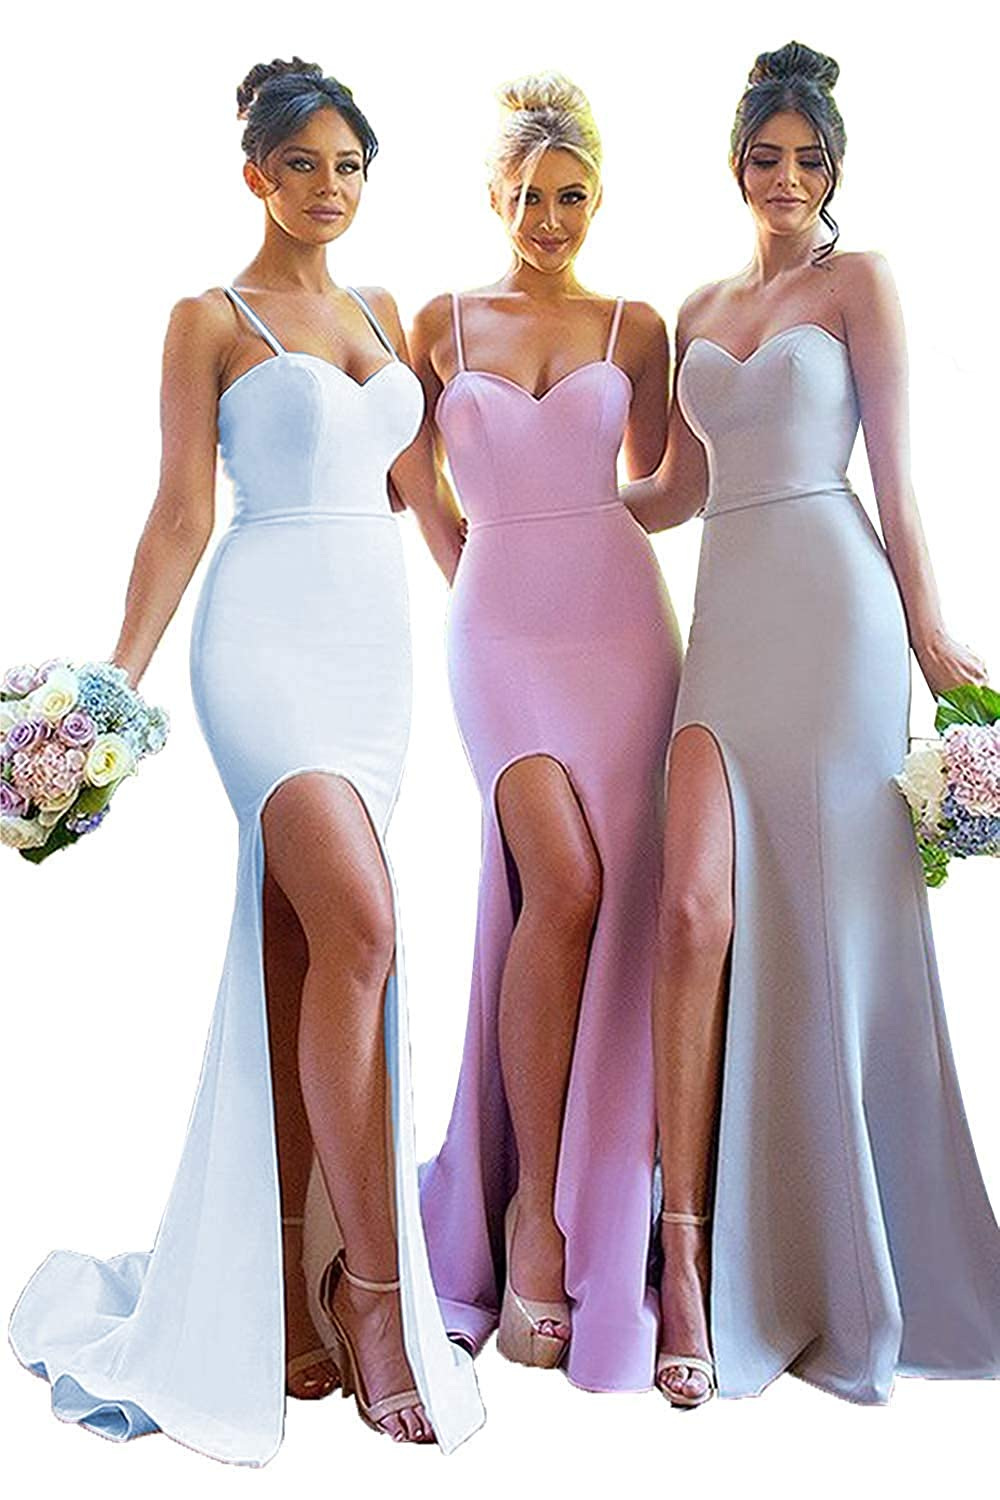 blueea Sophie Women's Spaghetti Strap Mermaid Bridesmaid Dress Strapless Prom Formal Gowns with Slit Q010